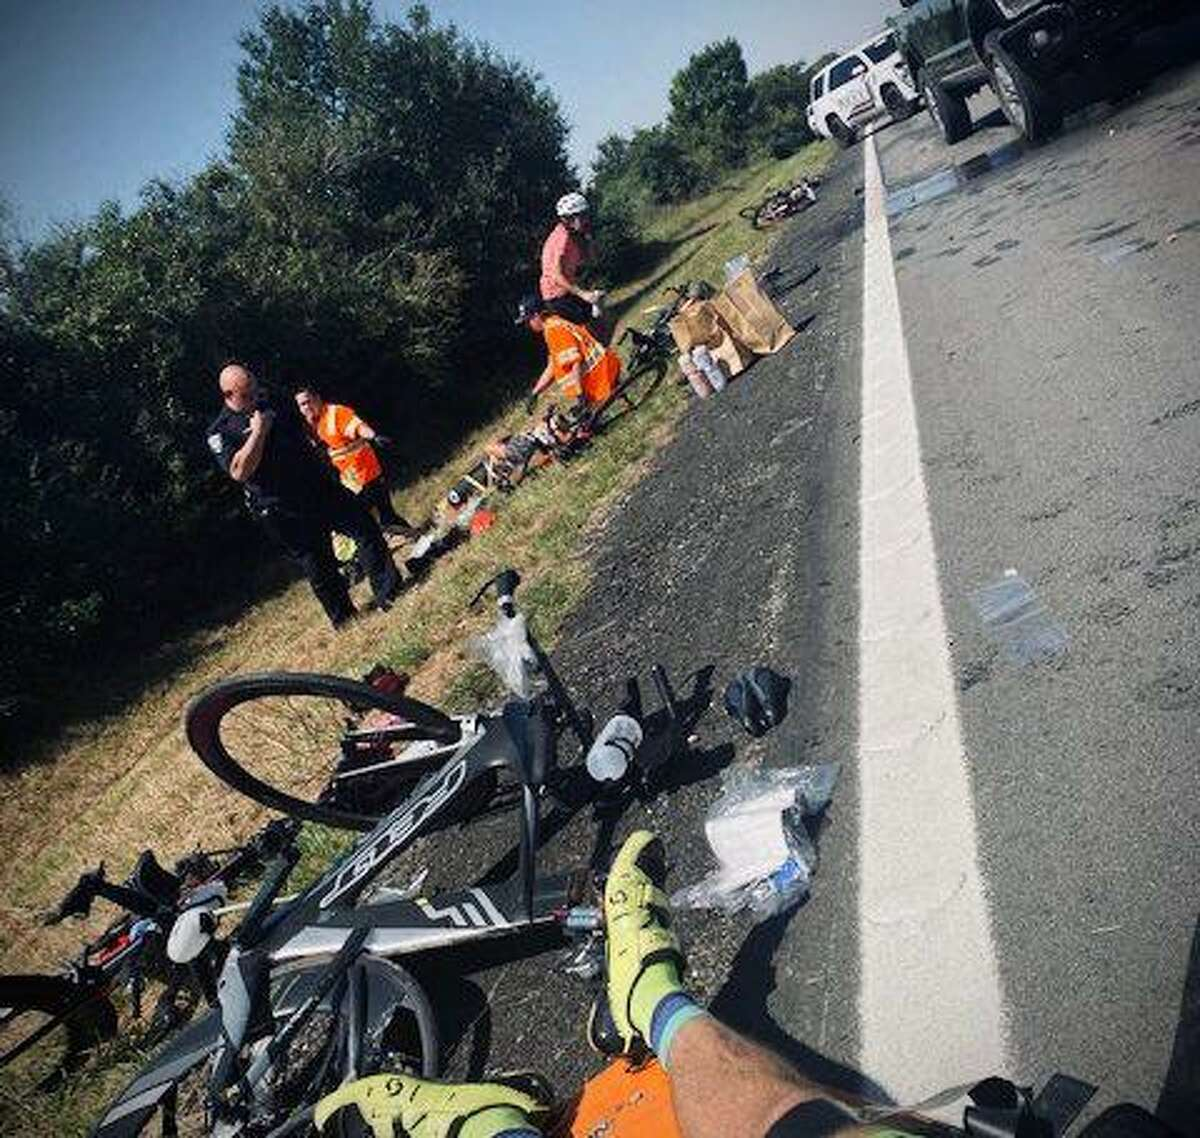 Six bicyclists were injured Sept. 25, 2021, in Waller, Texas, when witnesses say a pickup driver, 16, was intentionally blowing exhaust on them during a training ride.